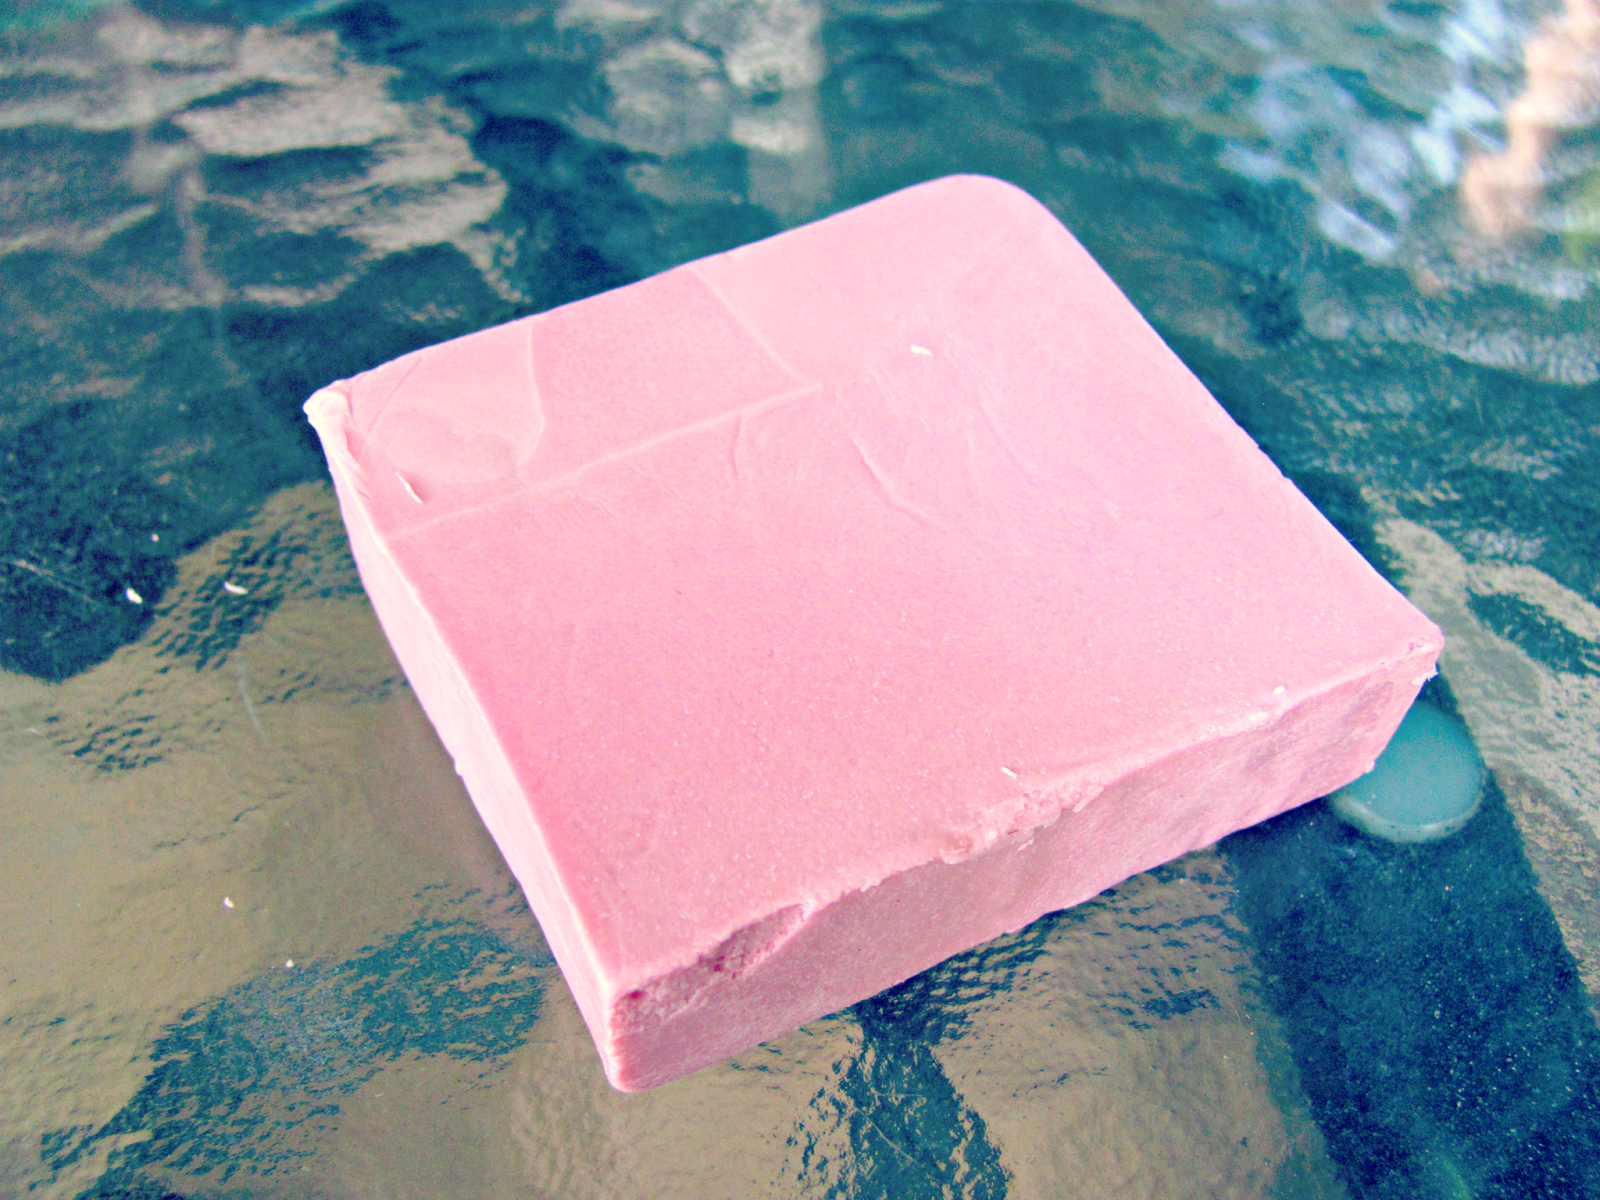 lush-cosmetics-rock-star-soap